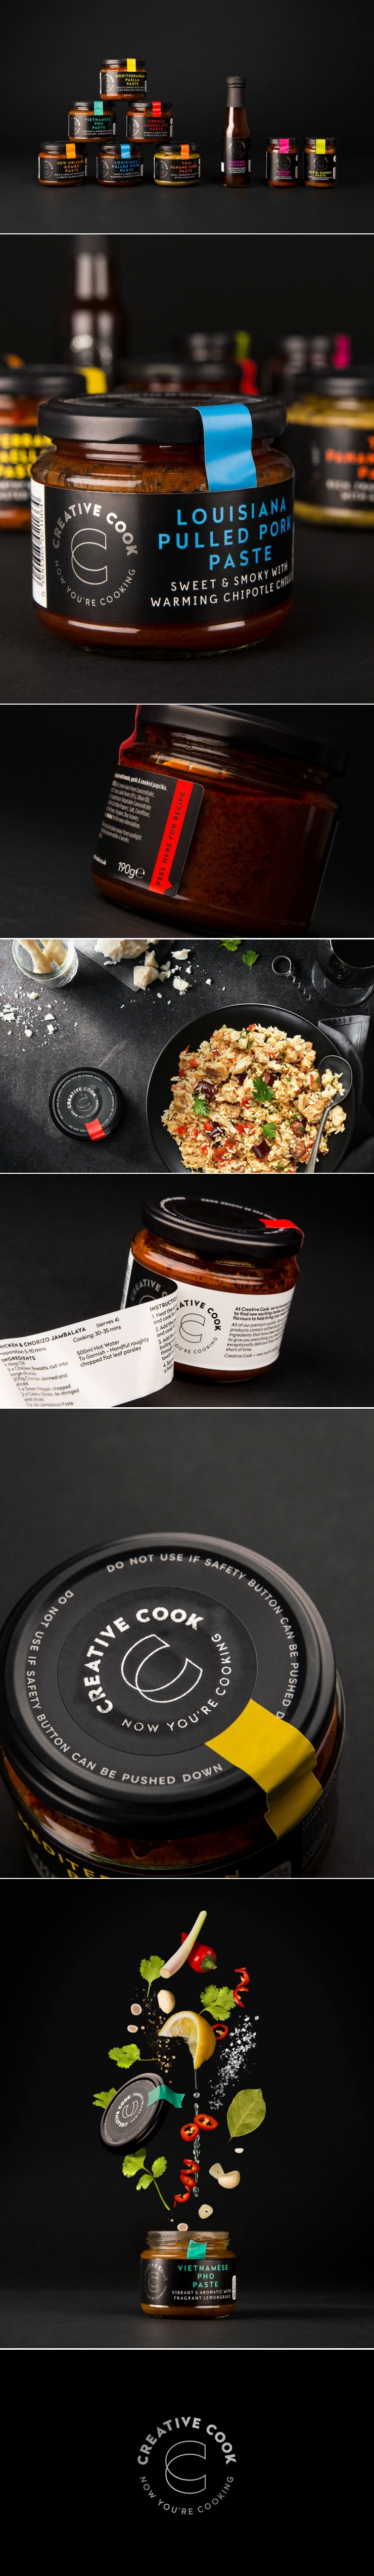 Get Creative In The Kitchen With Creative Cook's New Products — The Dieline | Packaging & Branding Design & Innovation News